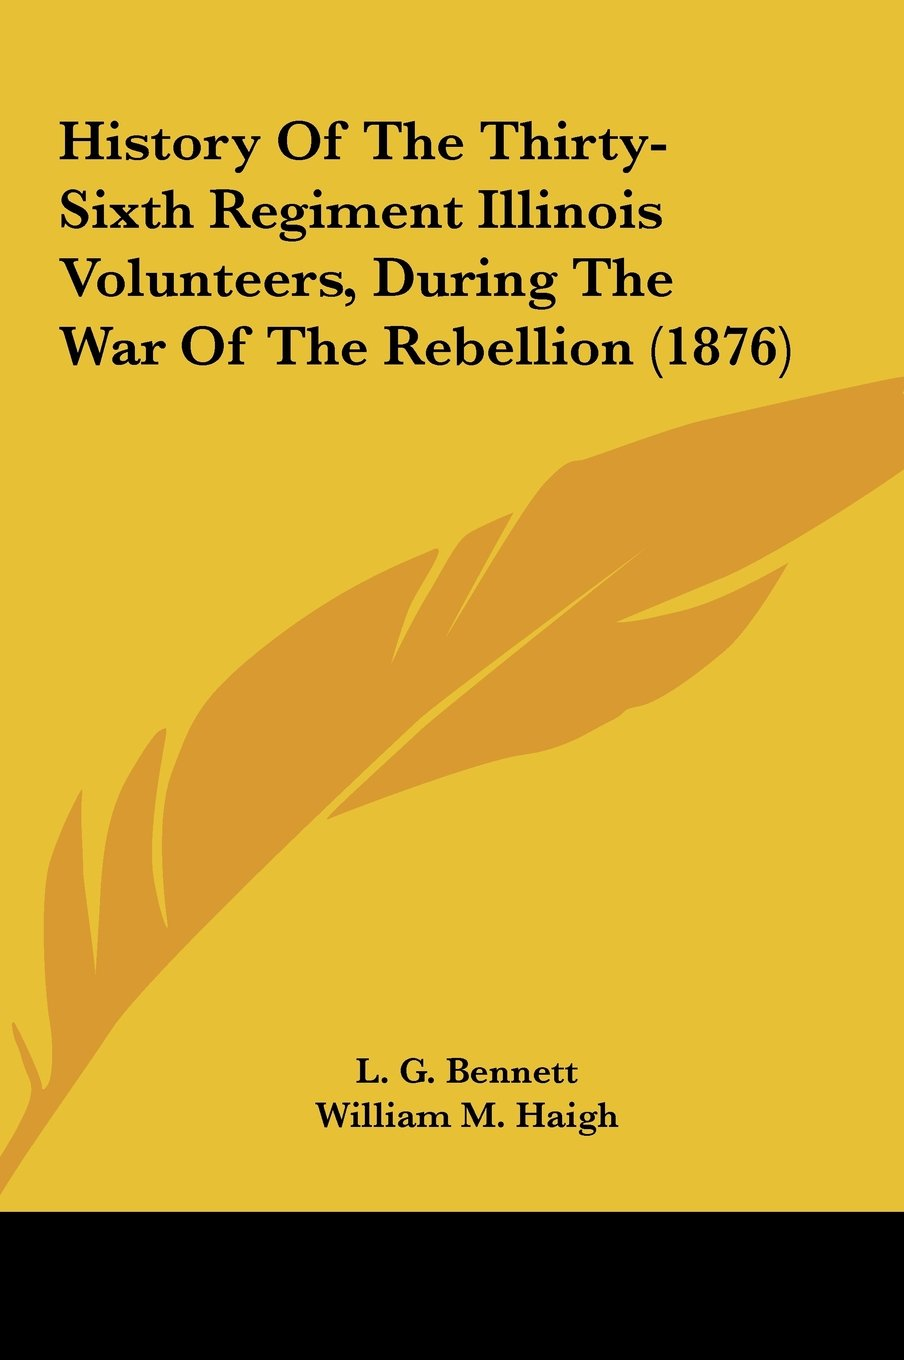 Read Online History of the Thirty-Sixth Regiment Illinois Volunteers, During the War of the Rebellion (1876) ebook